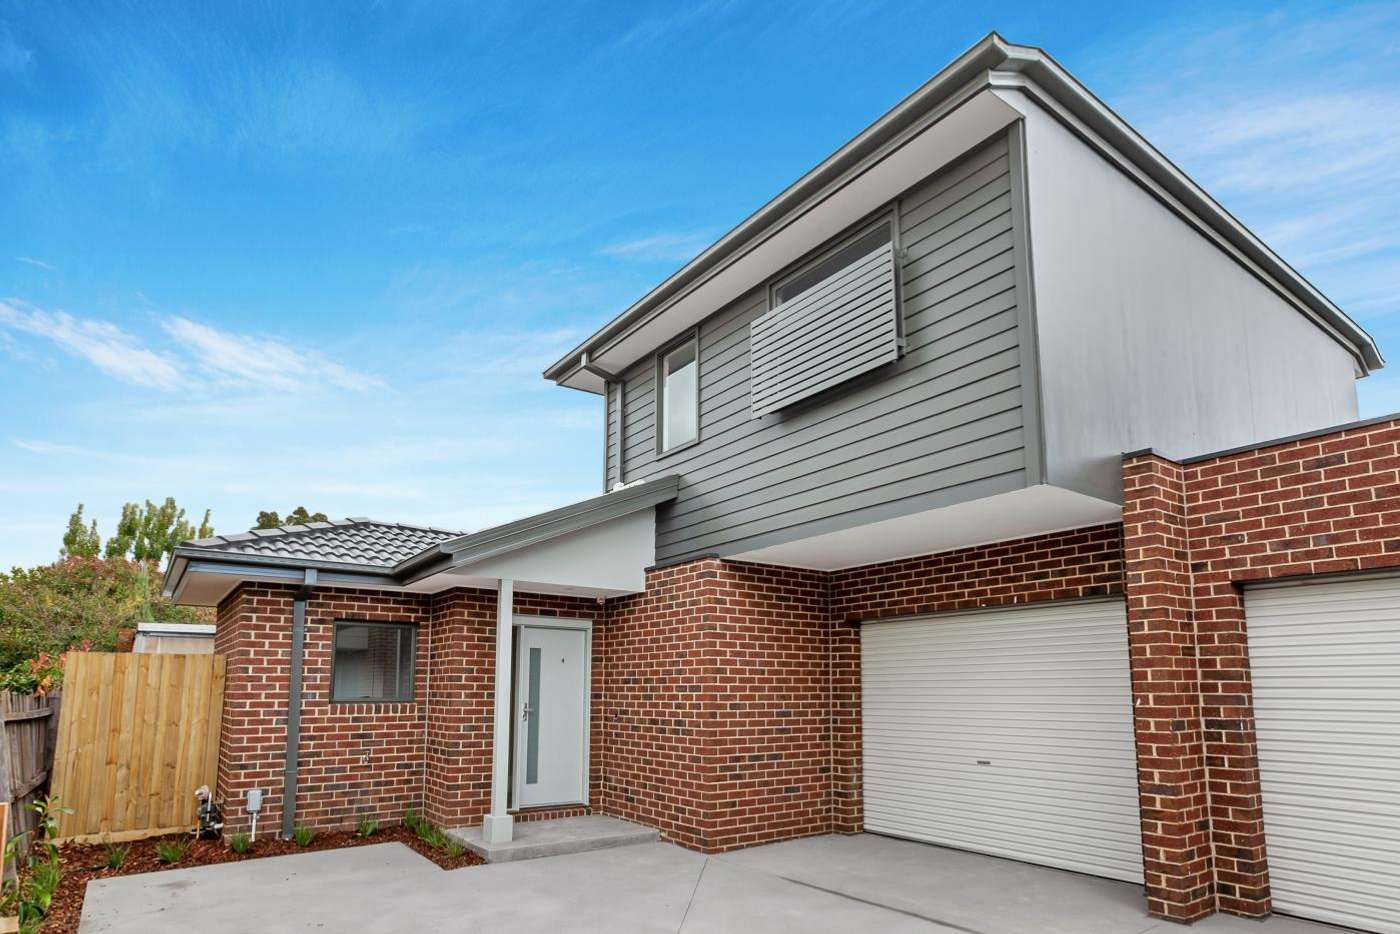 Main view of Homely house listing, 4/7 Dundee Street, Reservoir VIC 3073